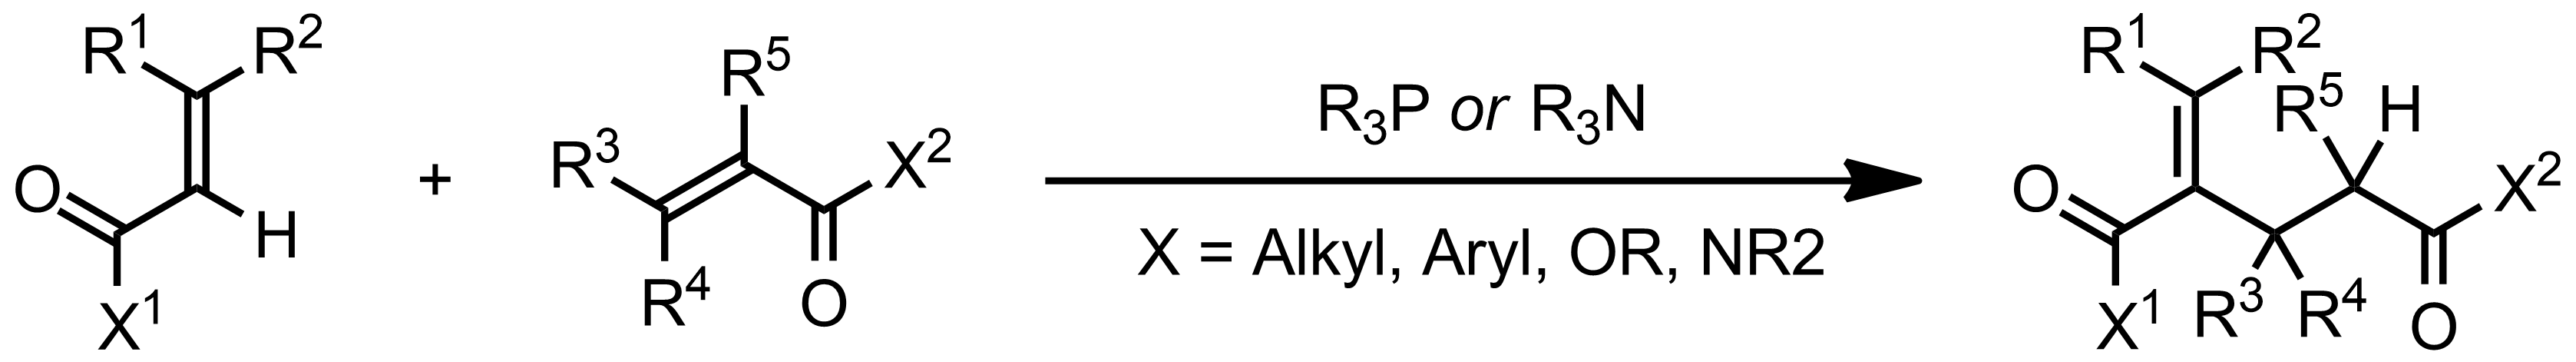 Schematic representation of the Rauhut-Currier Reaction.